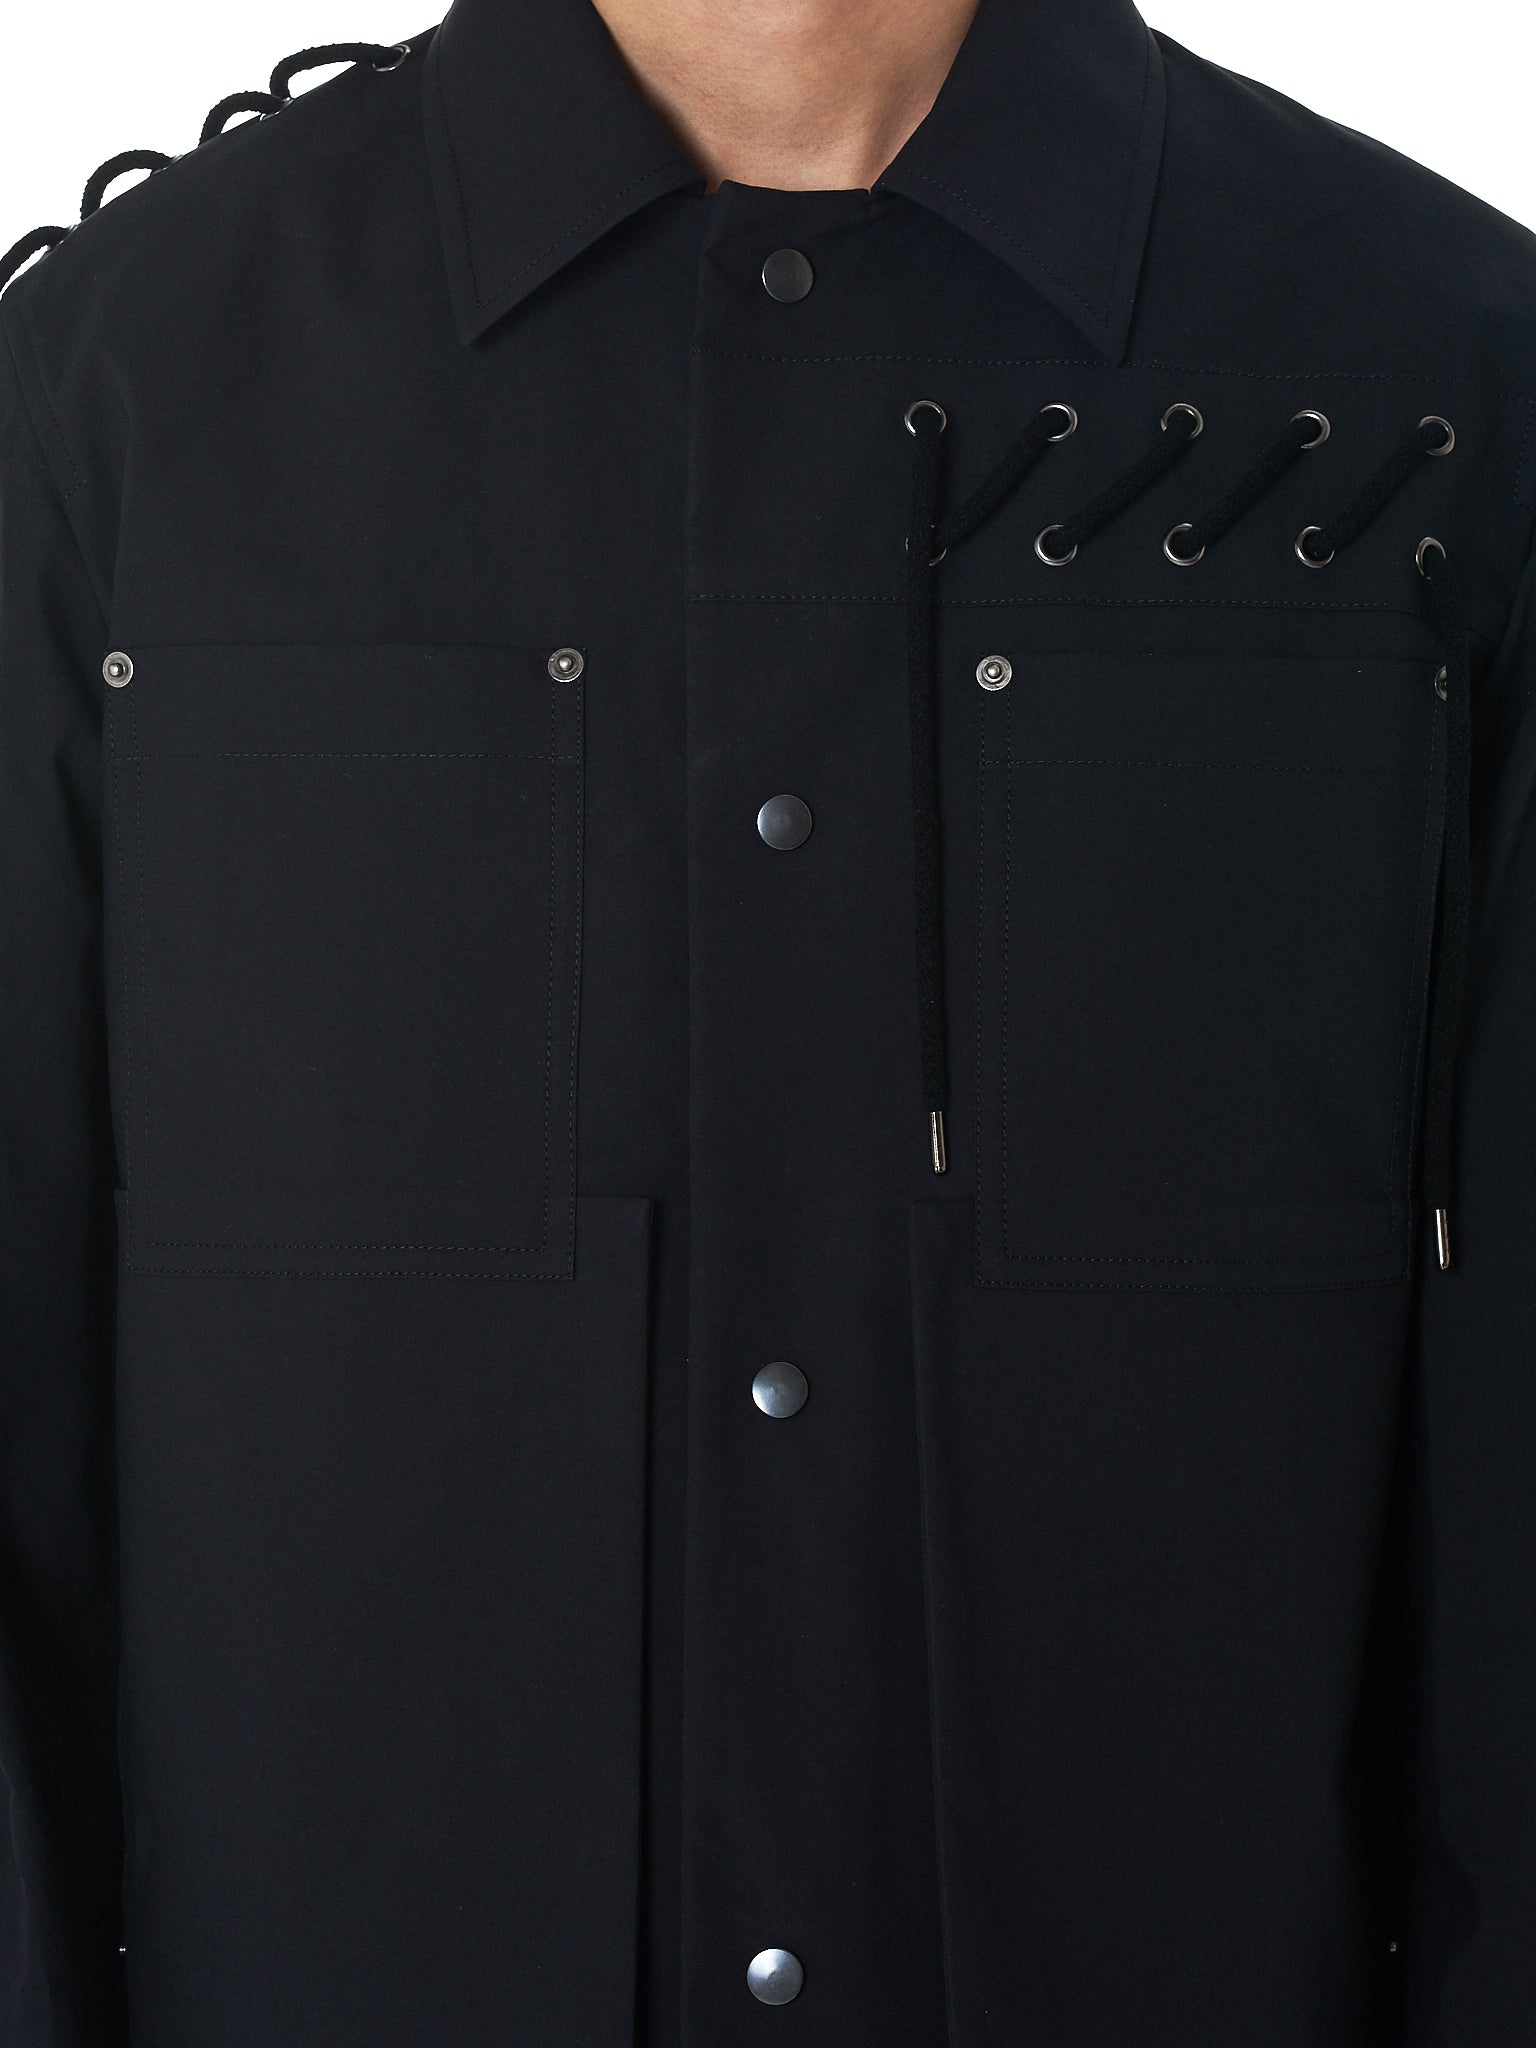 Craig Green Work Jacket - Hlorenzo Detail 4